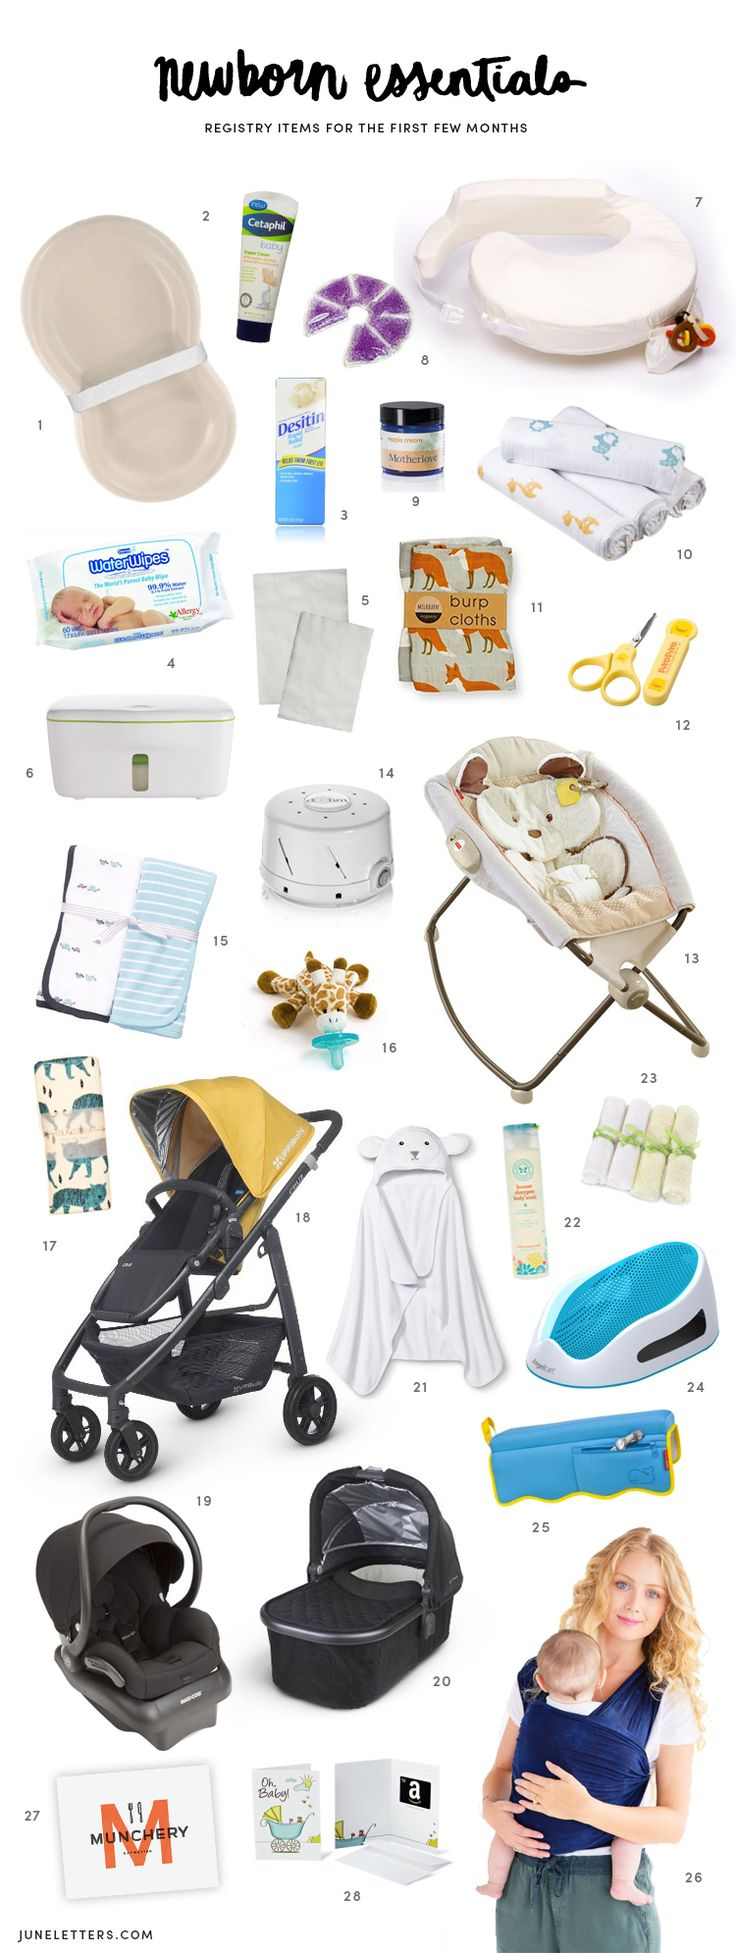 Newborn Essentials Registry